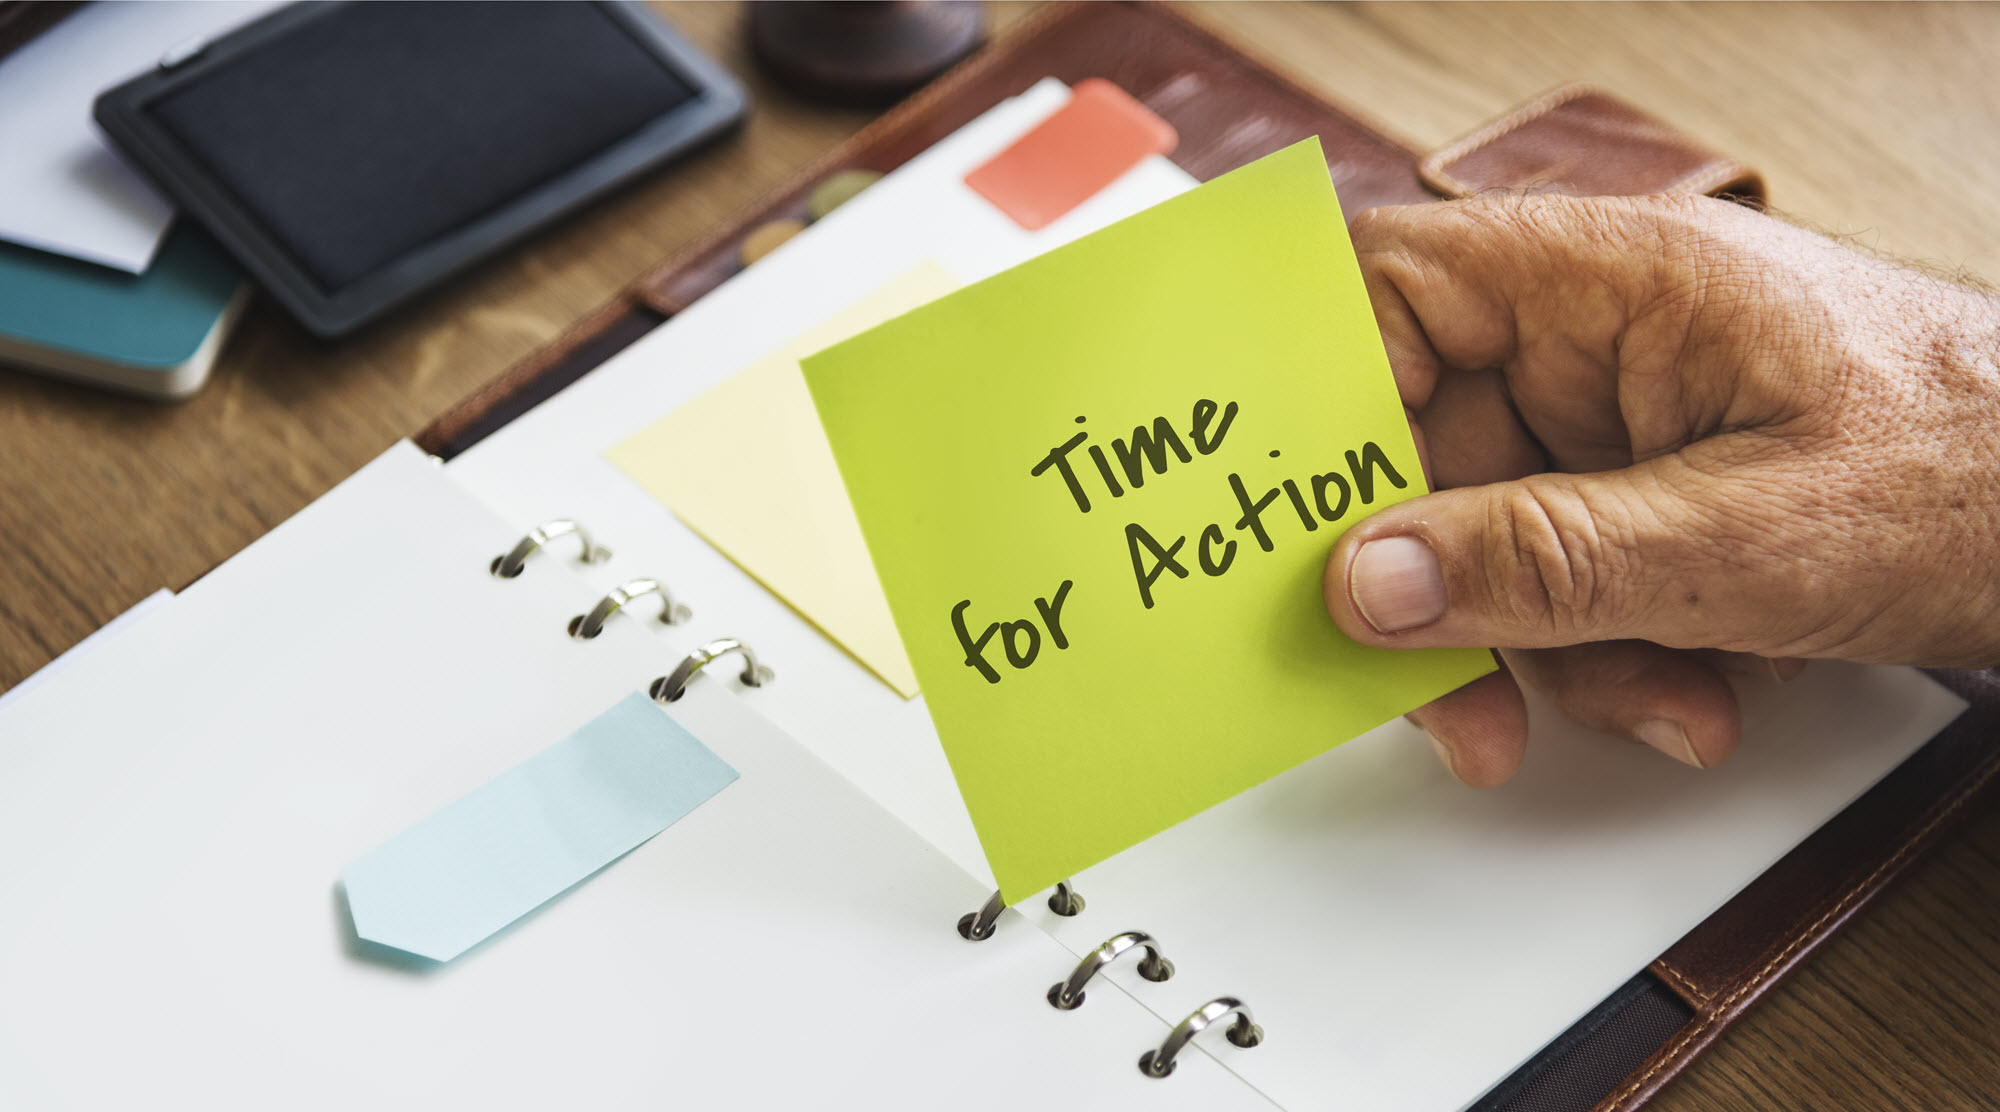 time-for-action-change-concept-PMDX9P3